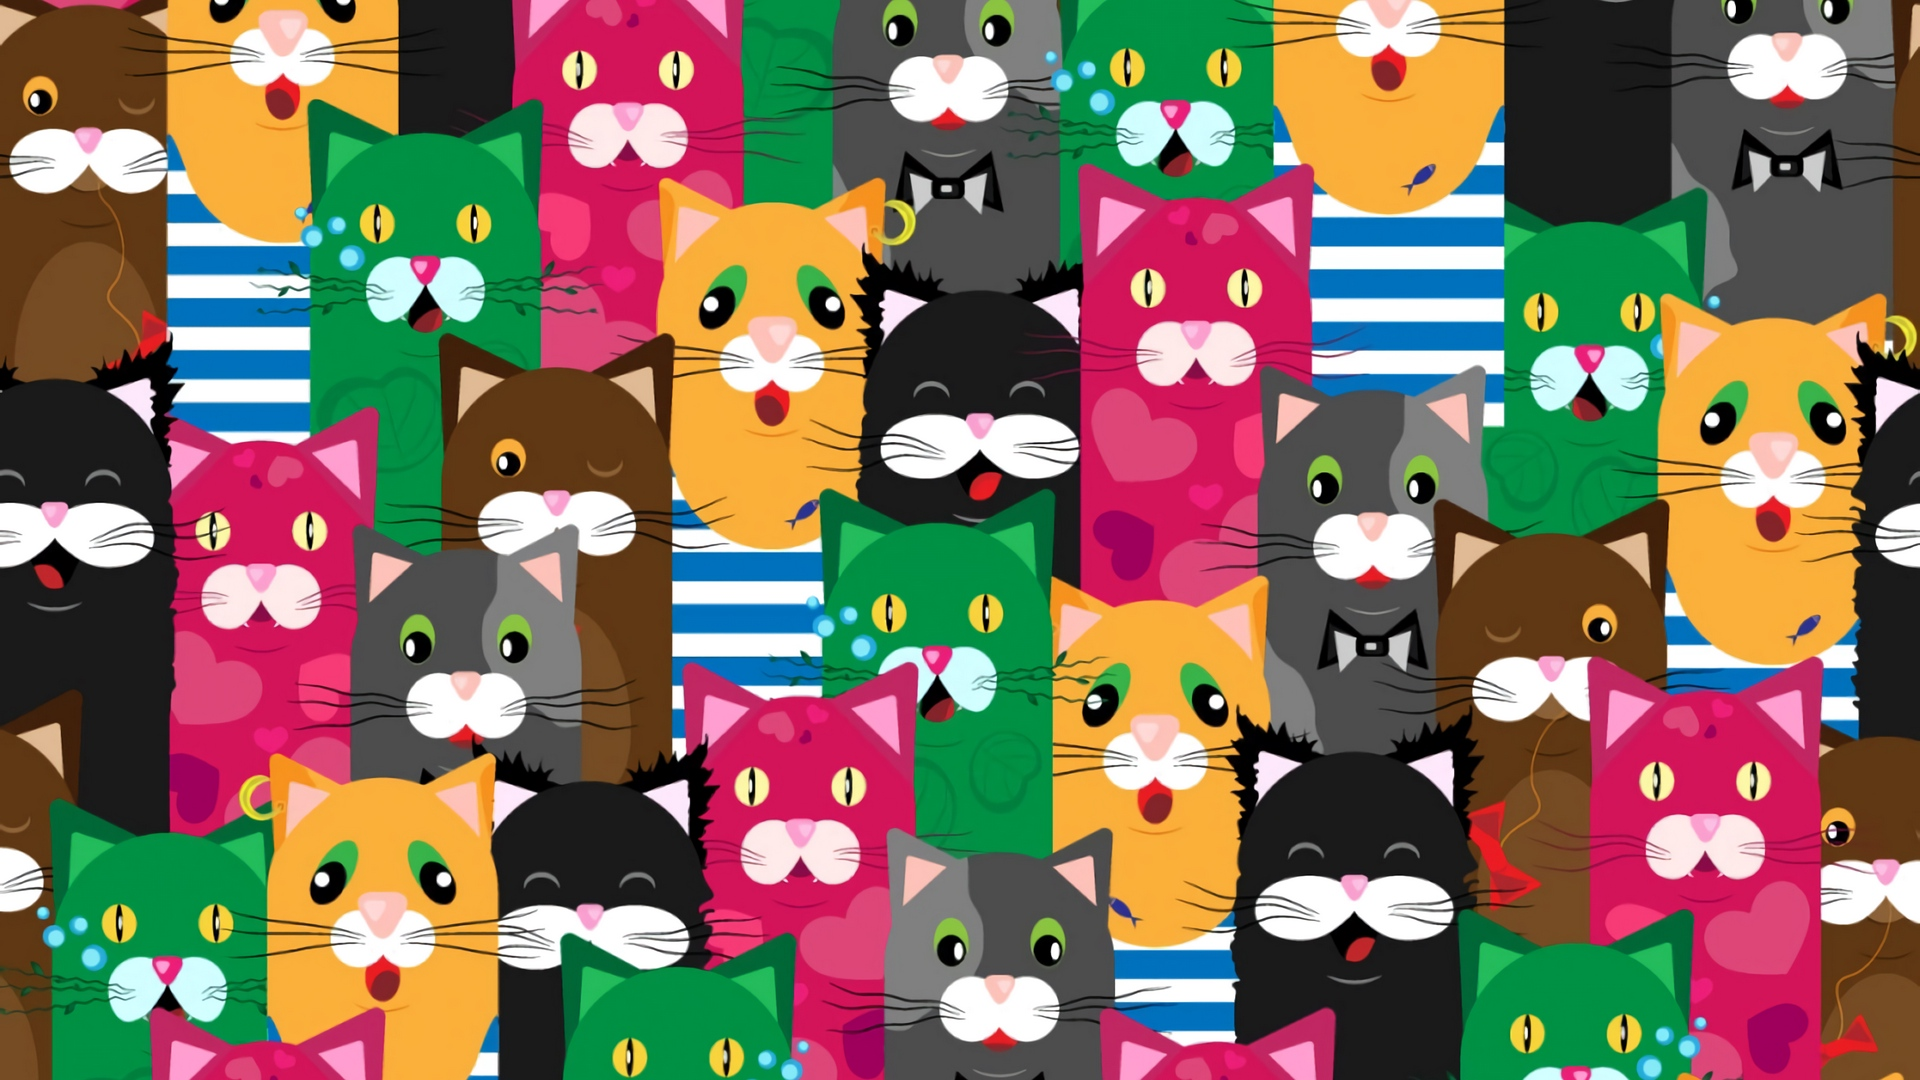 Download wallpaper 1920x1080 cats, funny, colorful, pattern.